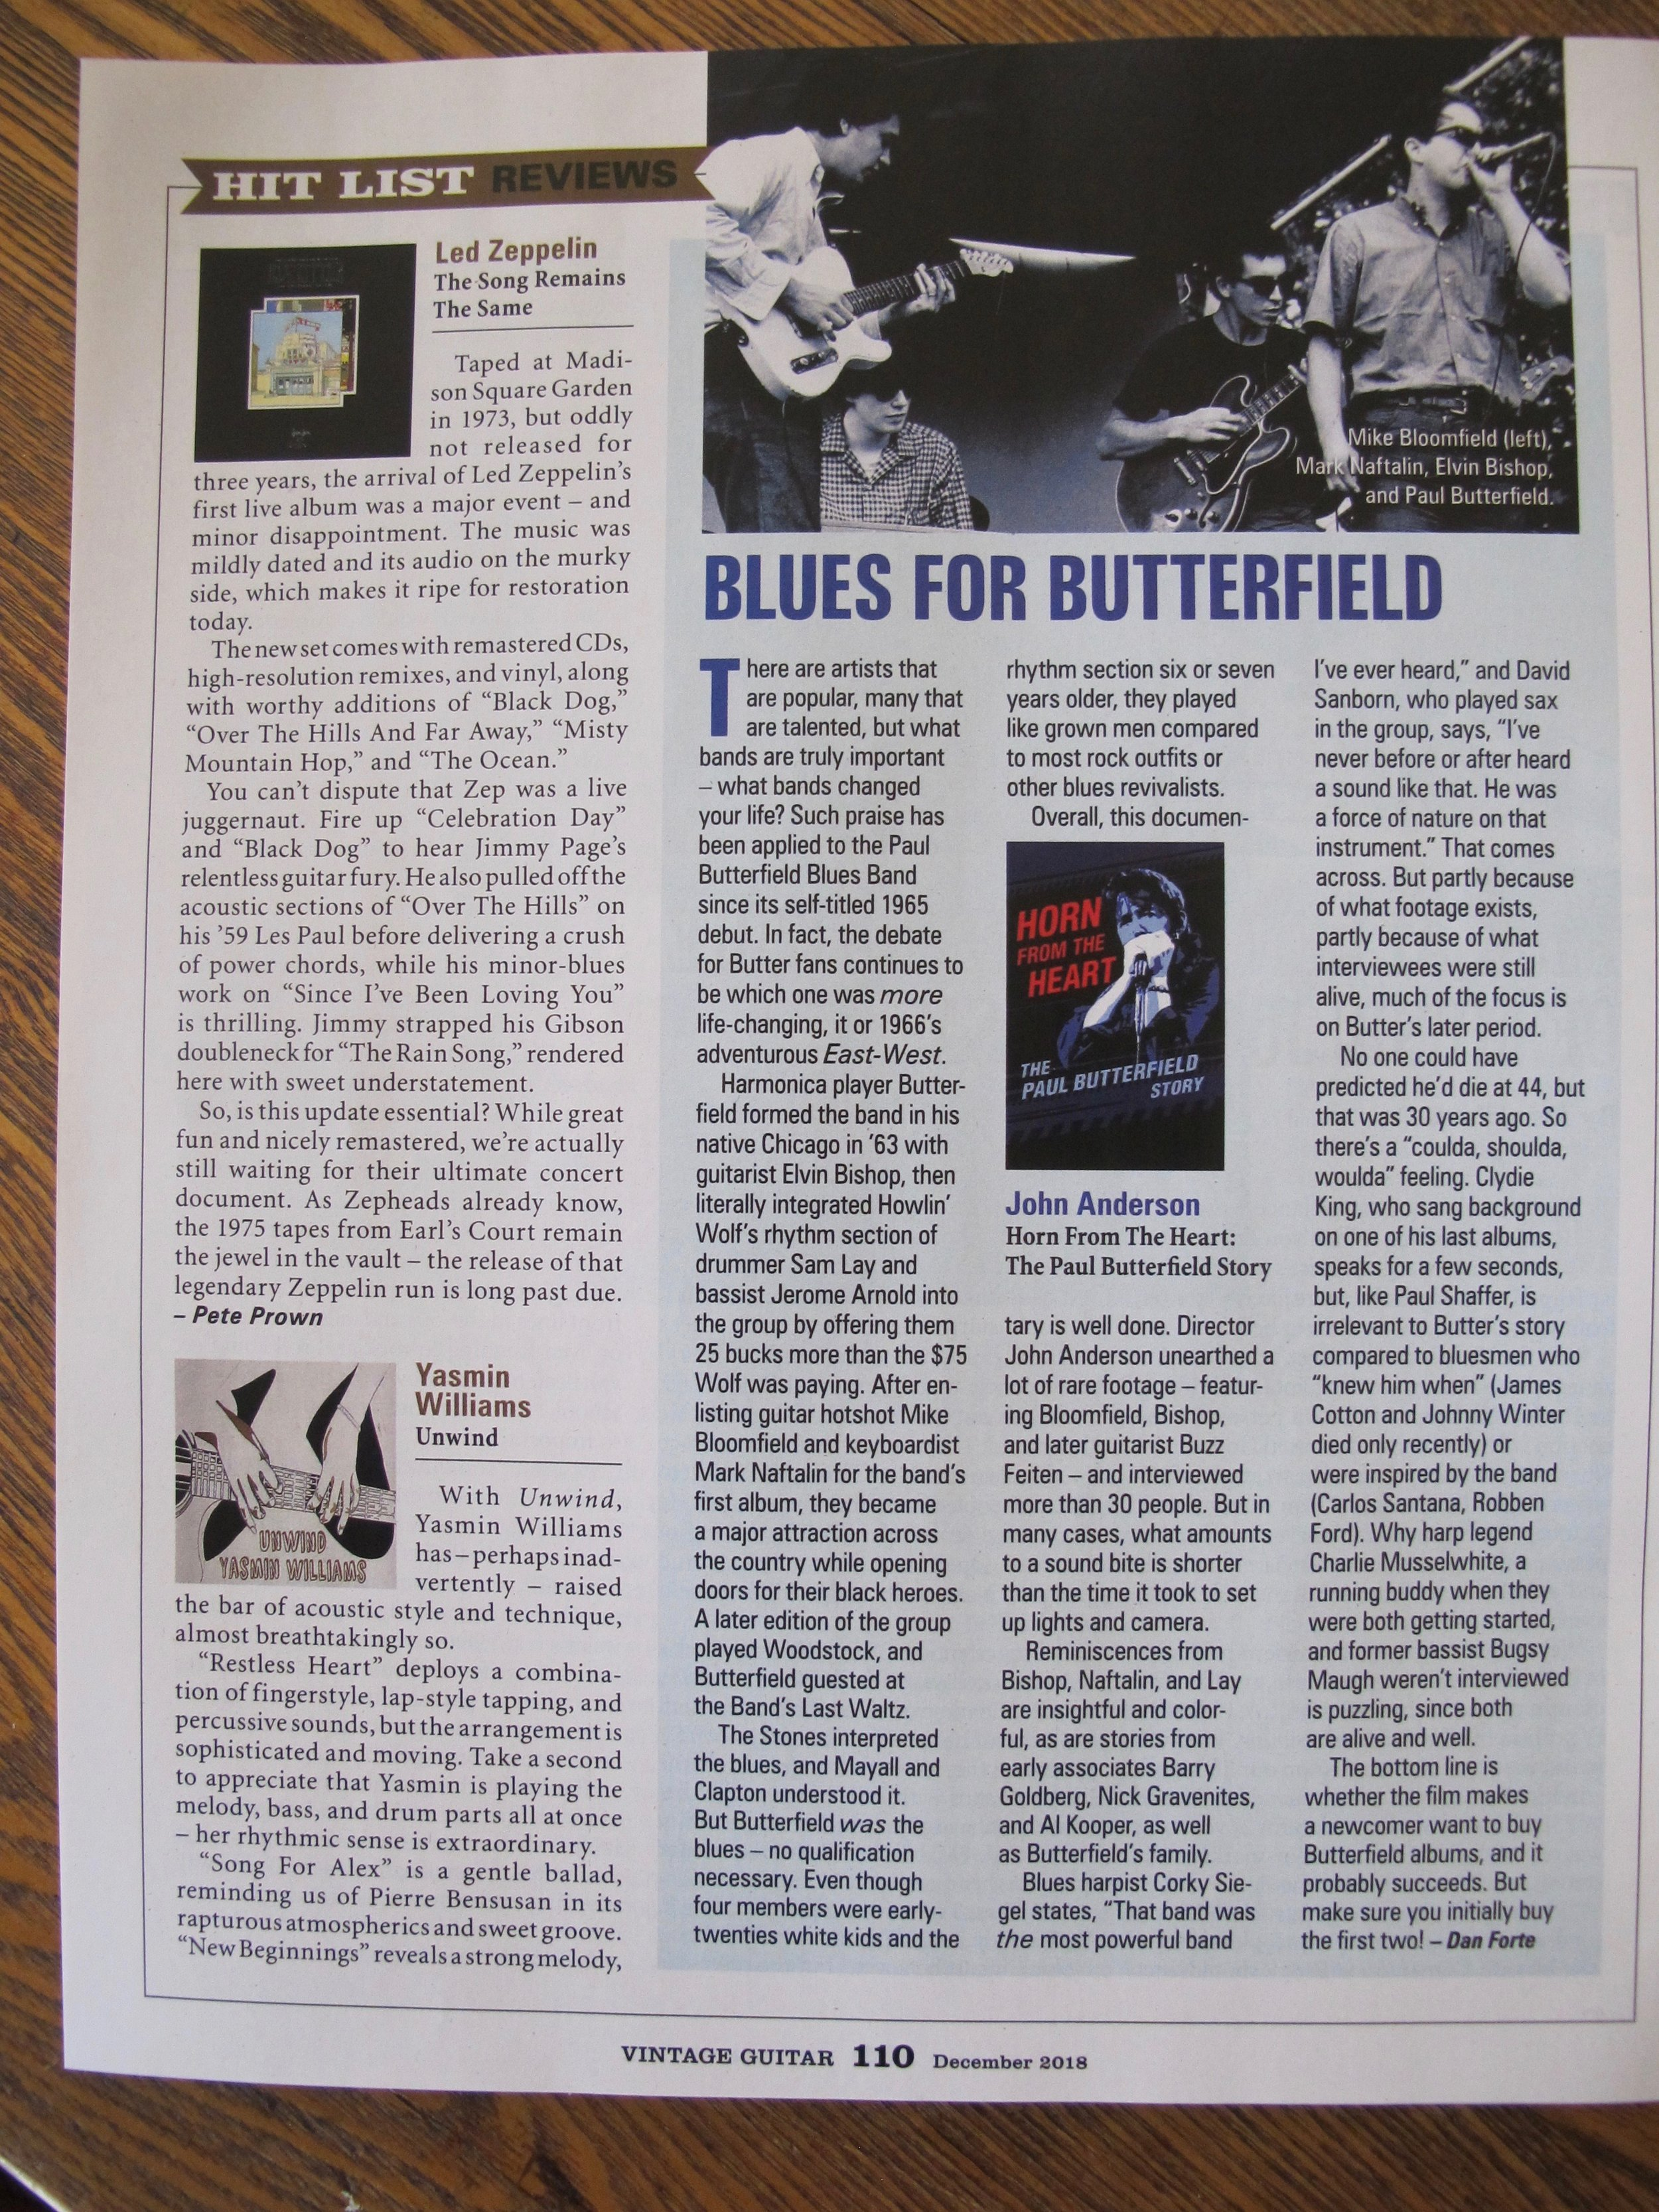 Vintage Guitar Magazine - Check out my album in Vintage Guitar Magazine! Click the image to read the full review.